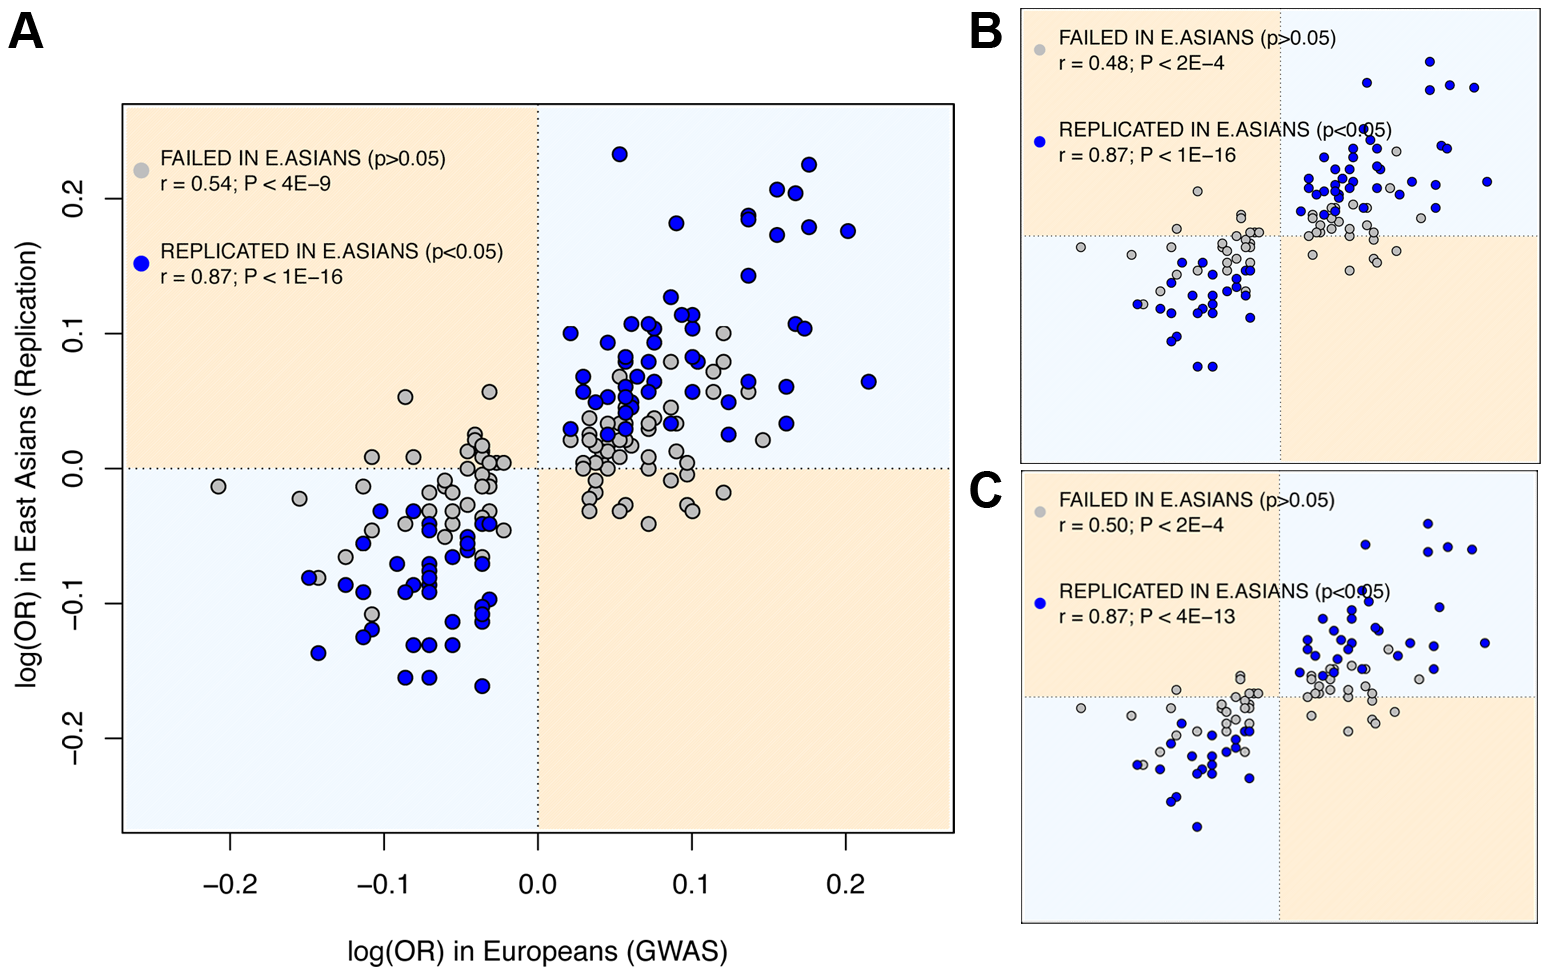 East Asian GWAS find the same risk allele and similar log(OR) than European discovery GWAS.